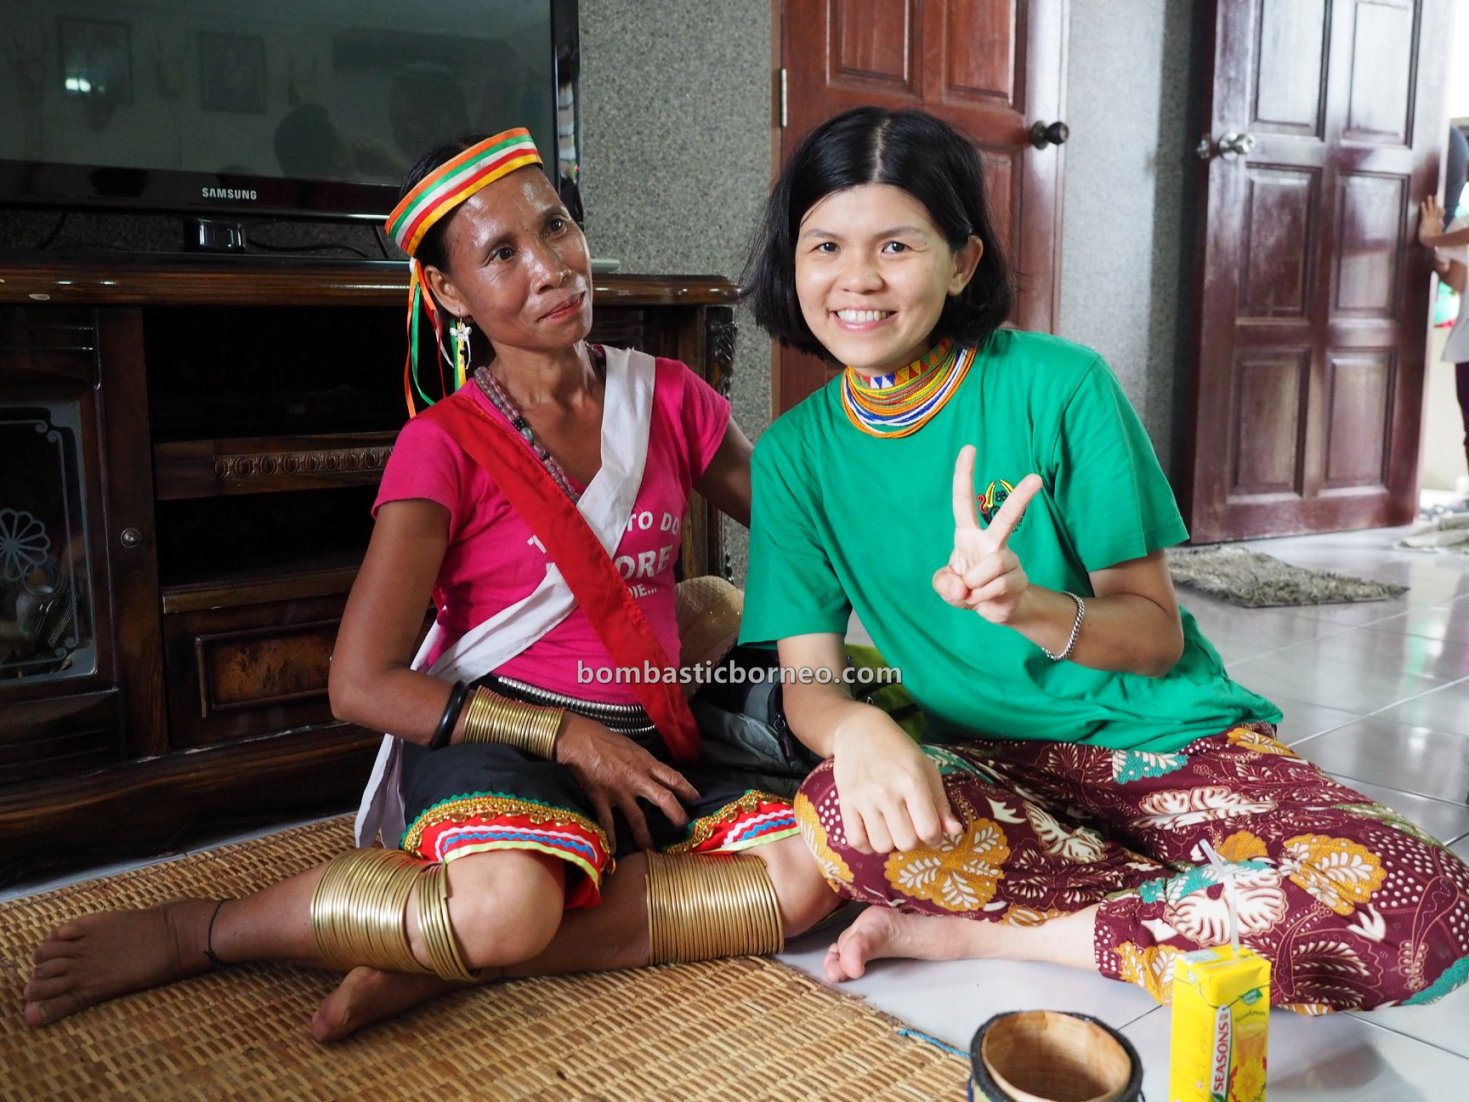 Dayak Bidayuh, paddy harvest festival, authentic, indigenous, budaya, culture, copper ring lady, Ethnic, native, tribal, travel guide, trans borneo, 婆罗洲游踪, 传统原住民铜环女, Sungkung Anep